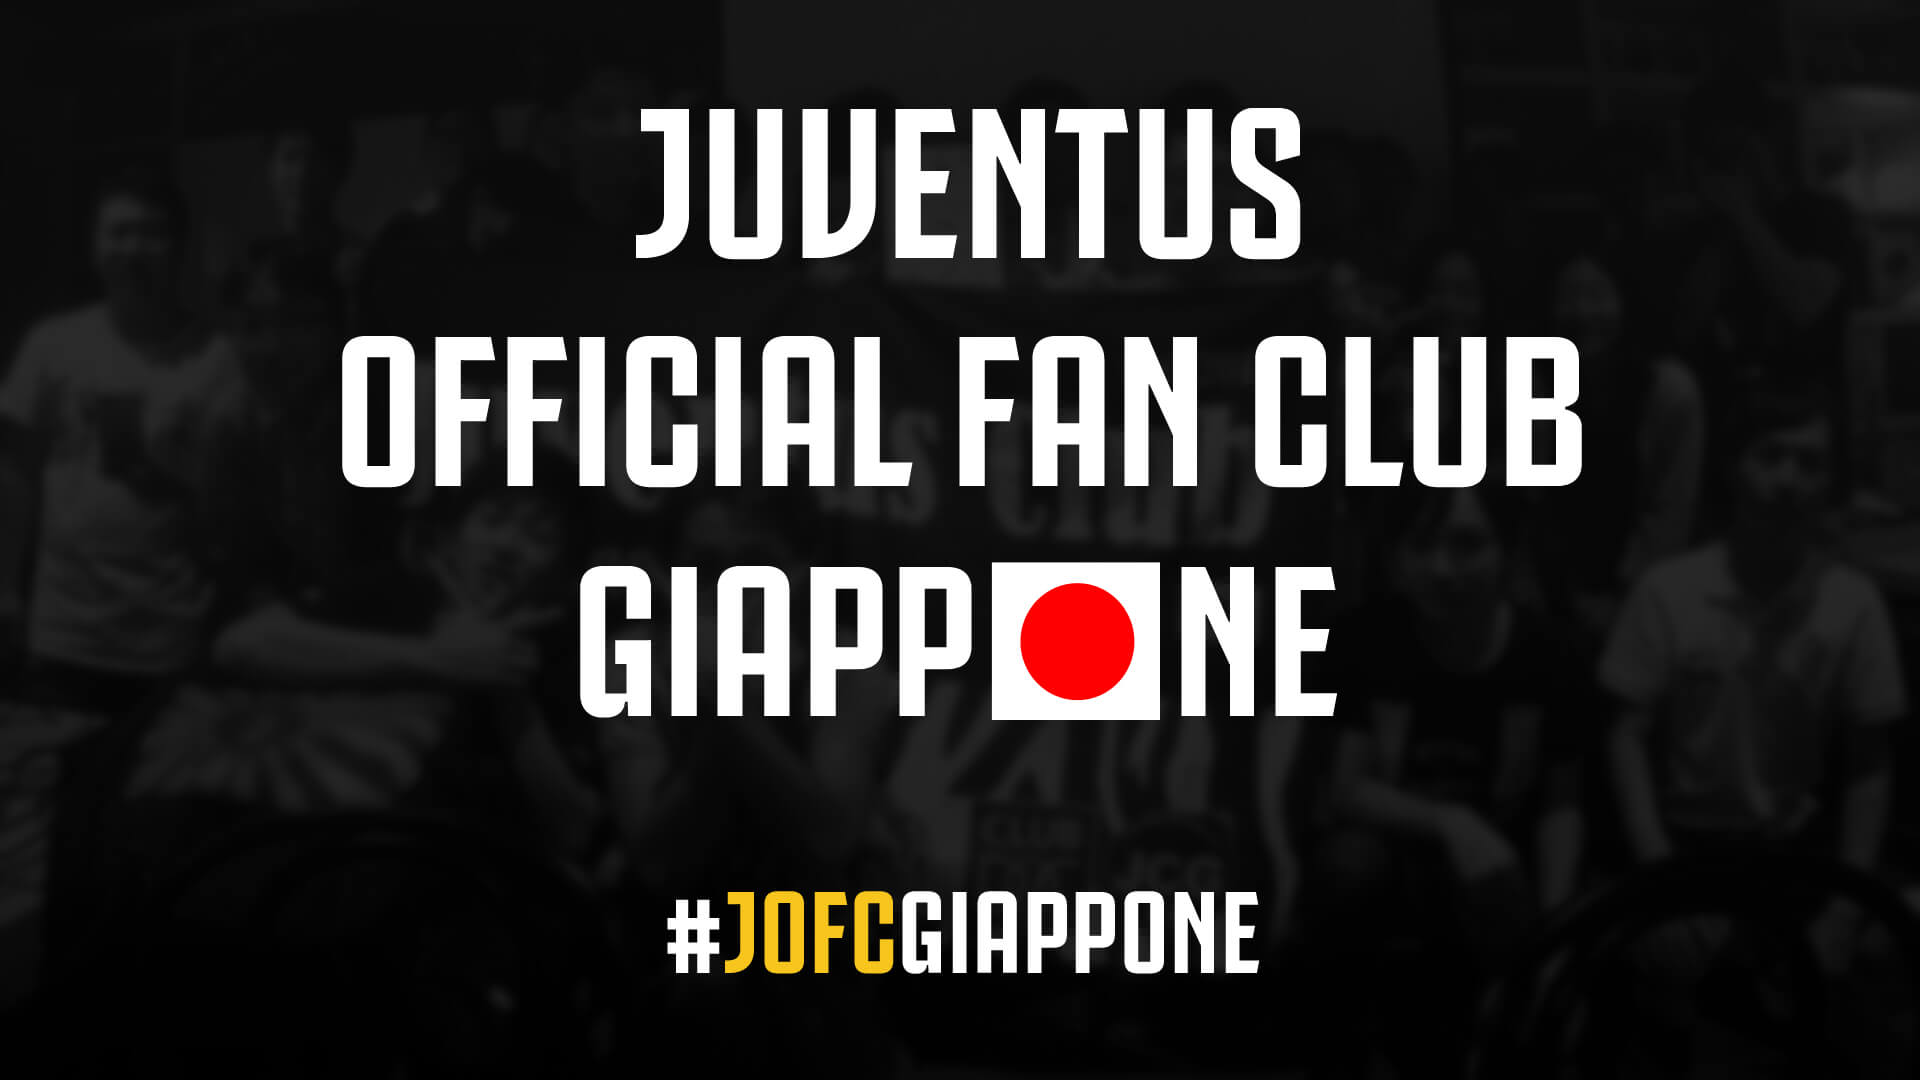 JUVENTUS OFFICIAL FAN CLUB GIAPPONE